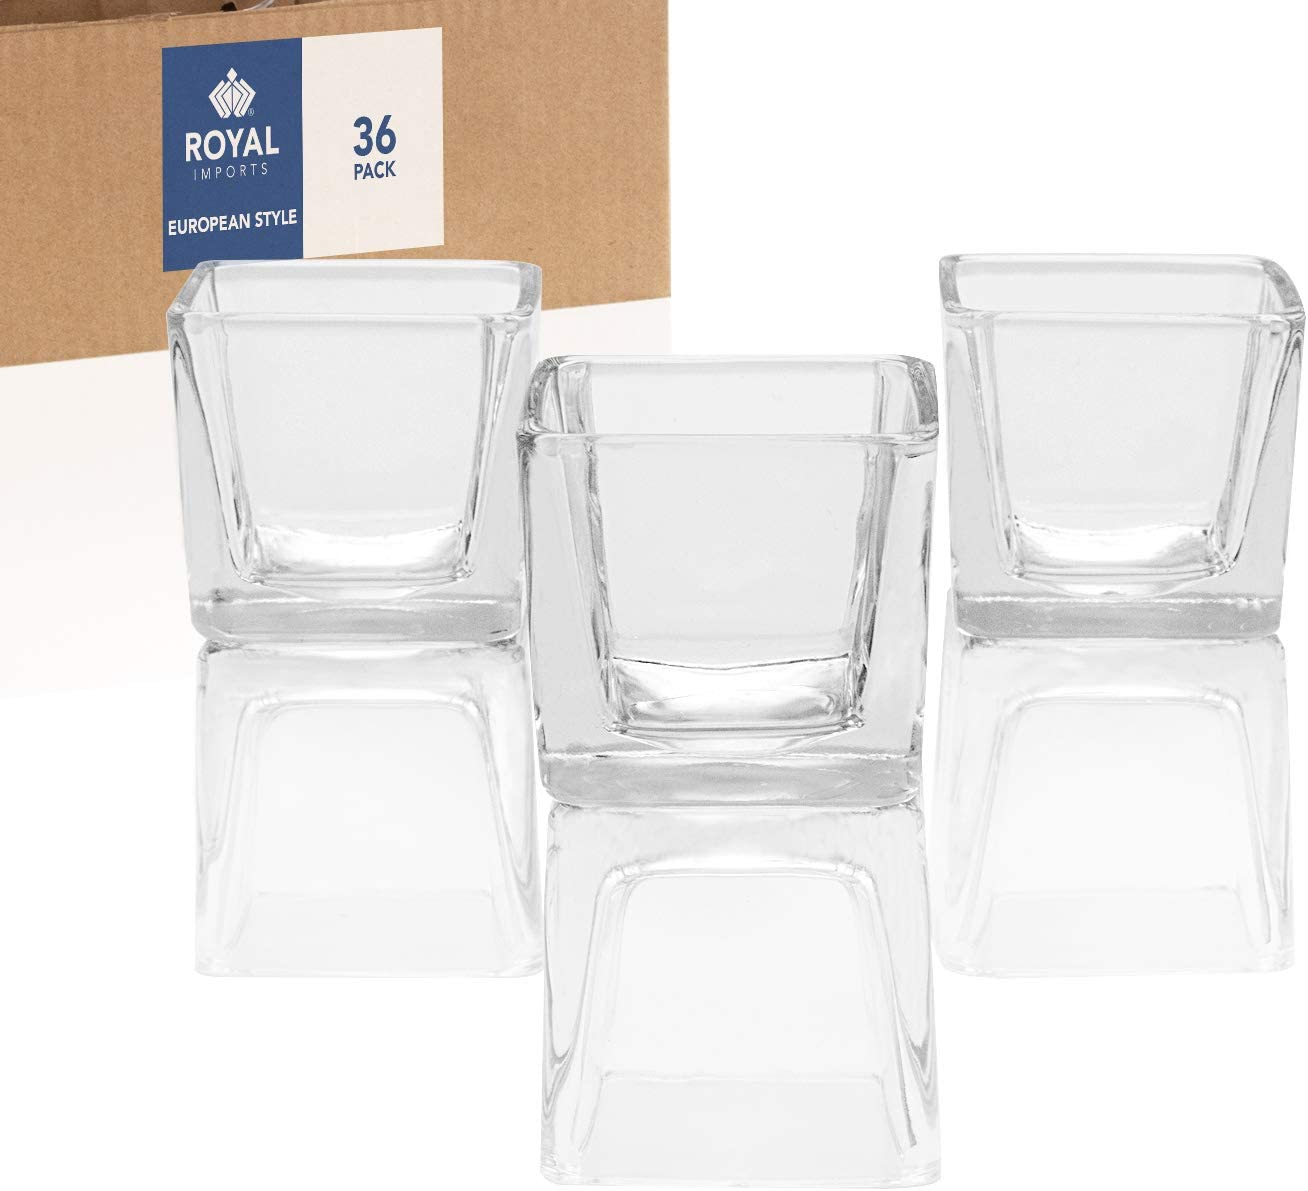 Royal Imports Candle Holder Glass Votive for Wedding, Birthday, Holiday & Home Decoration, European Style, Set of 36 - Unfilled